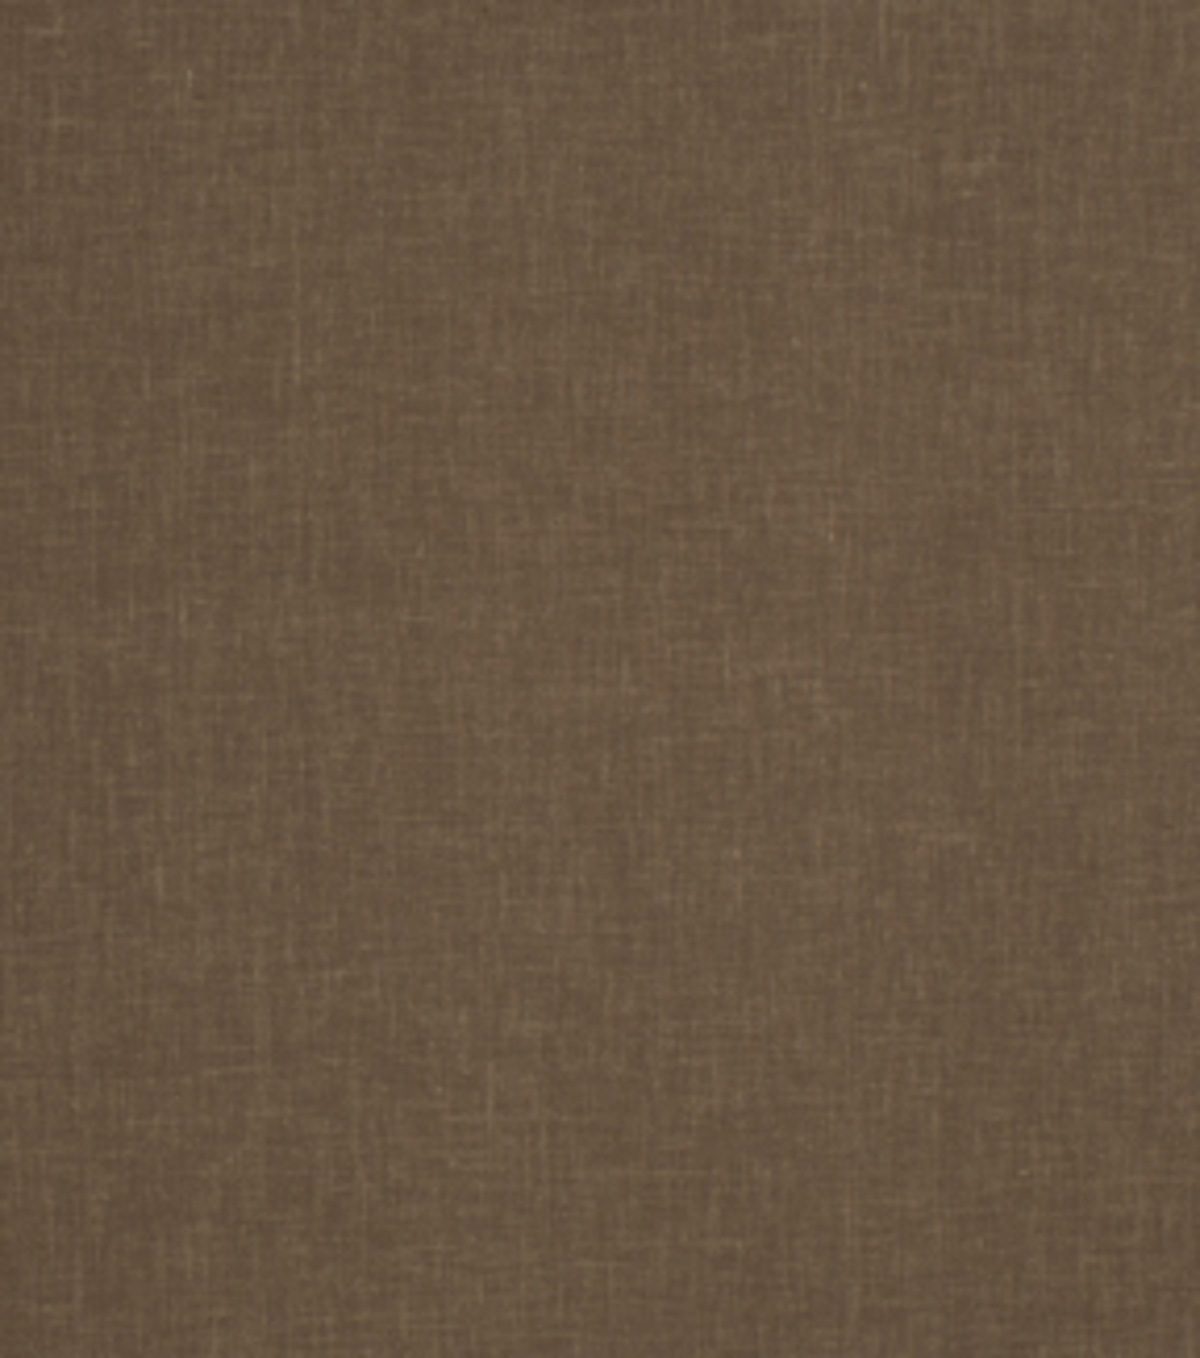 Home Decor 8\u0022x8\u0022 Fabric Swatch-Eaton Square Bannister Cocoa